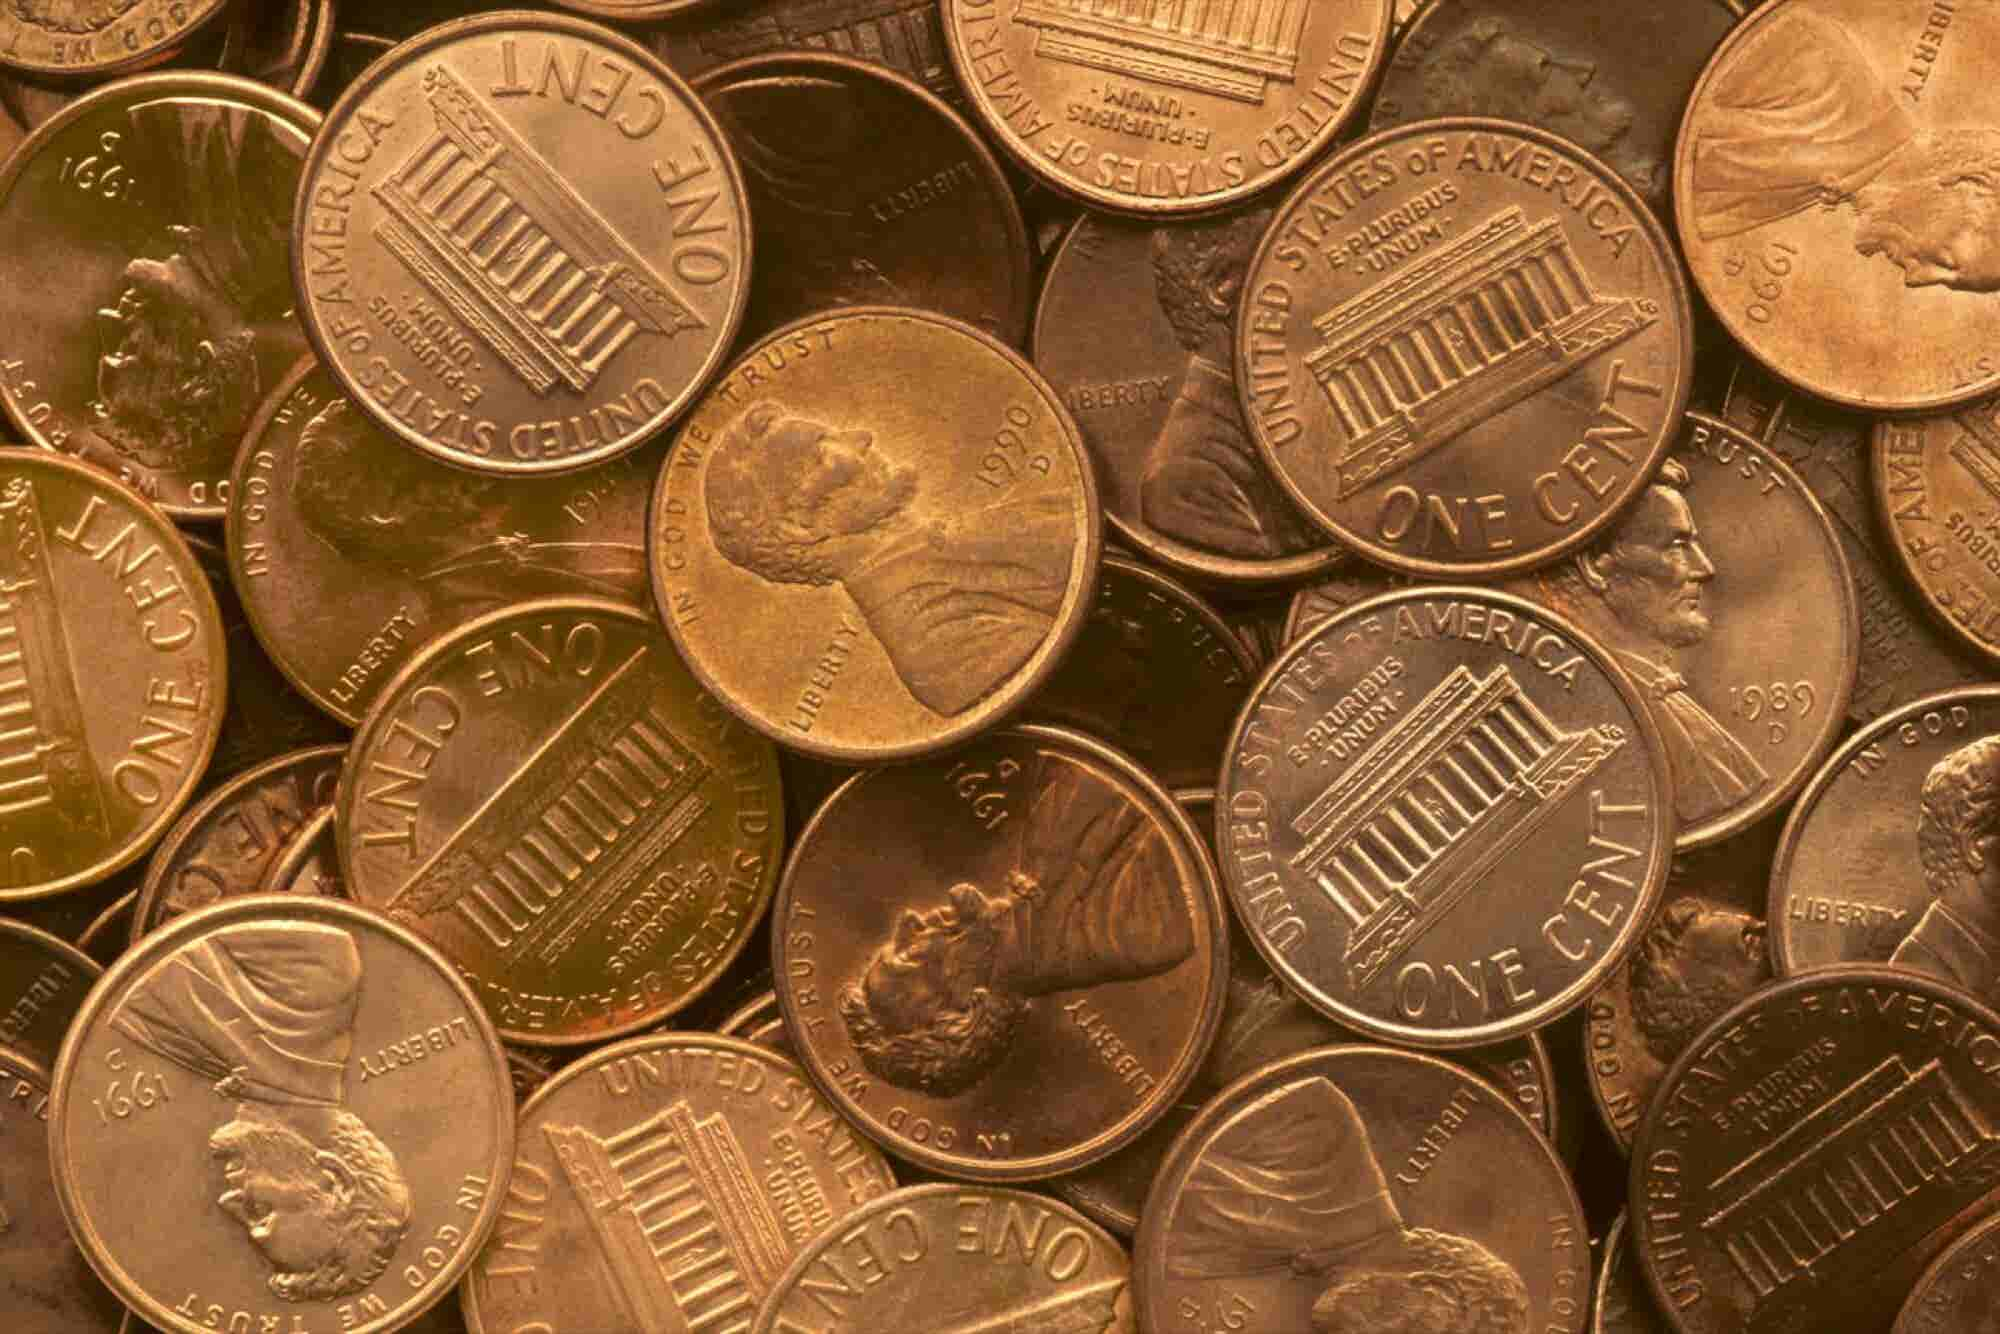 Why Does the US Keep Minting Pennies? For All the Same Reasons Every Organization Resists Change.